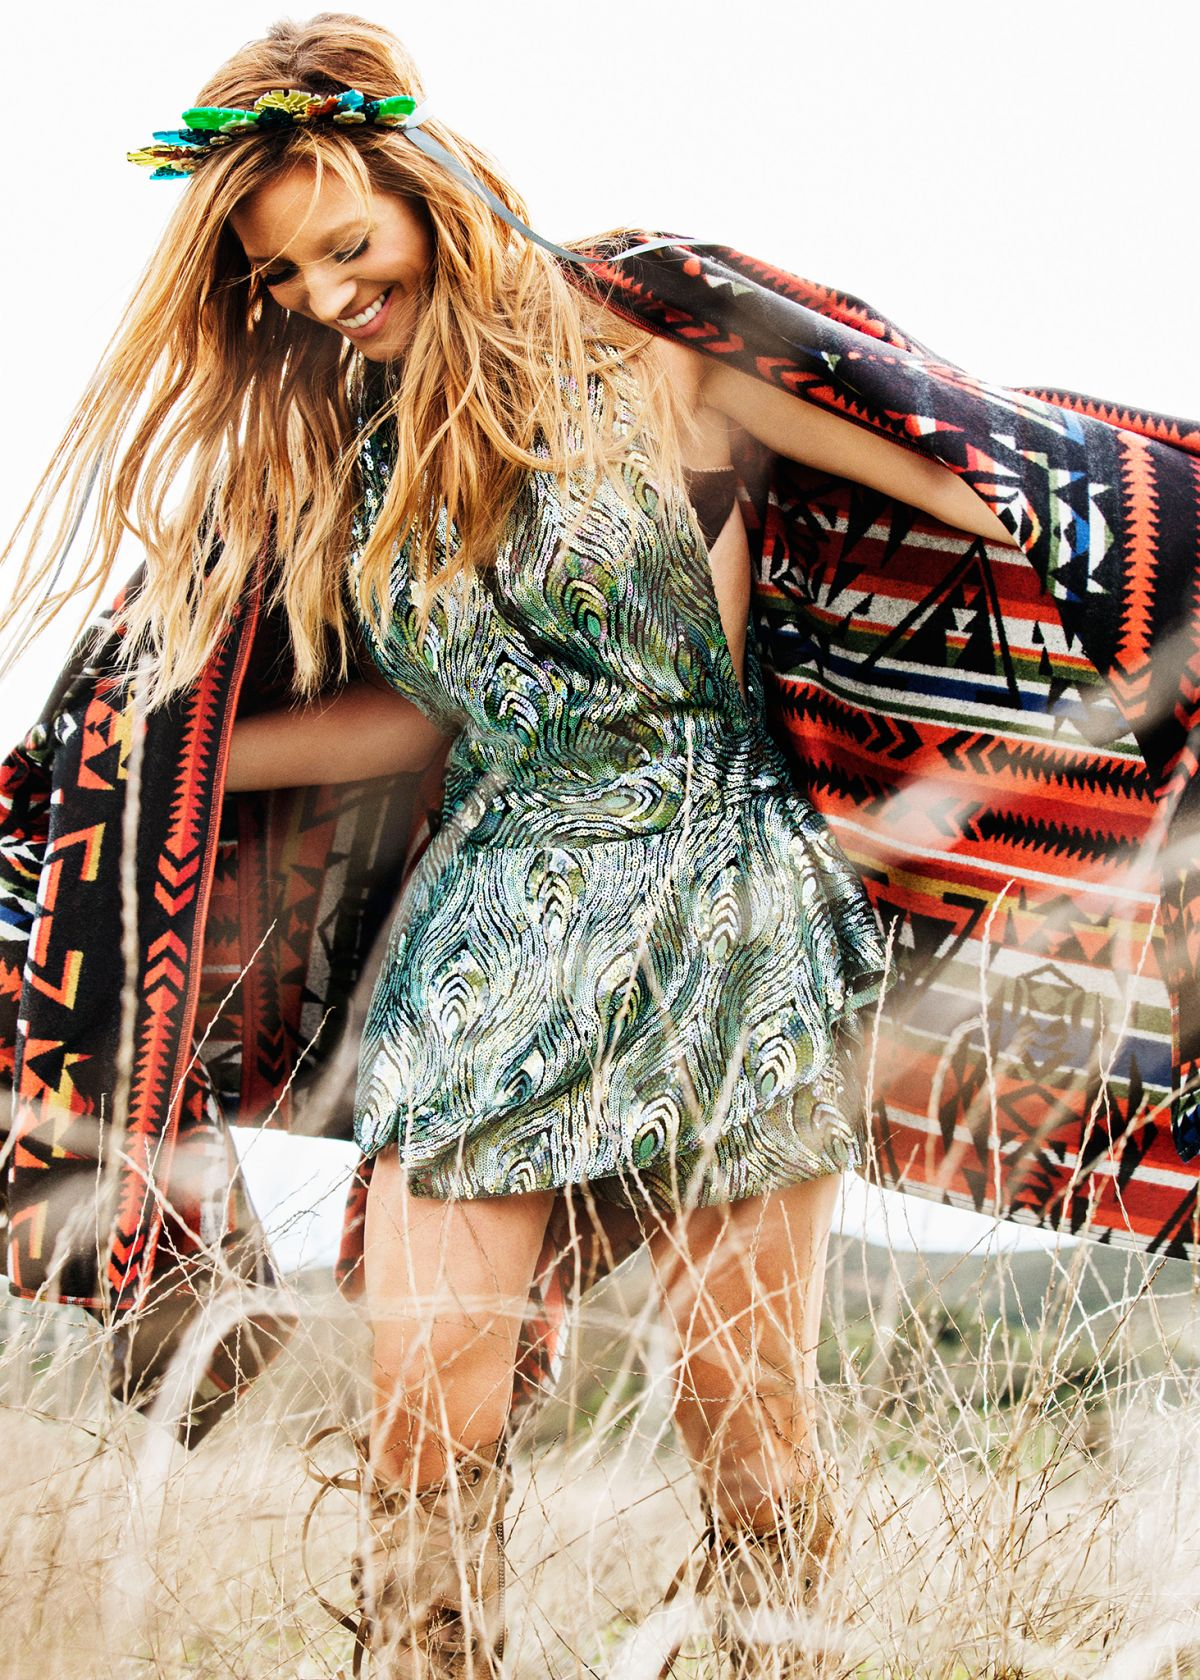 BRITTANY SNOW for Cosmopolitan Magazine, May 2015 Issue